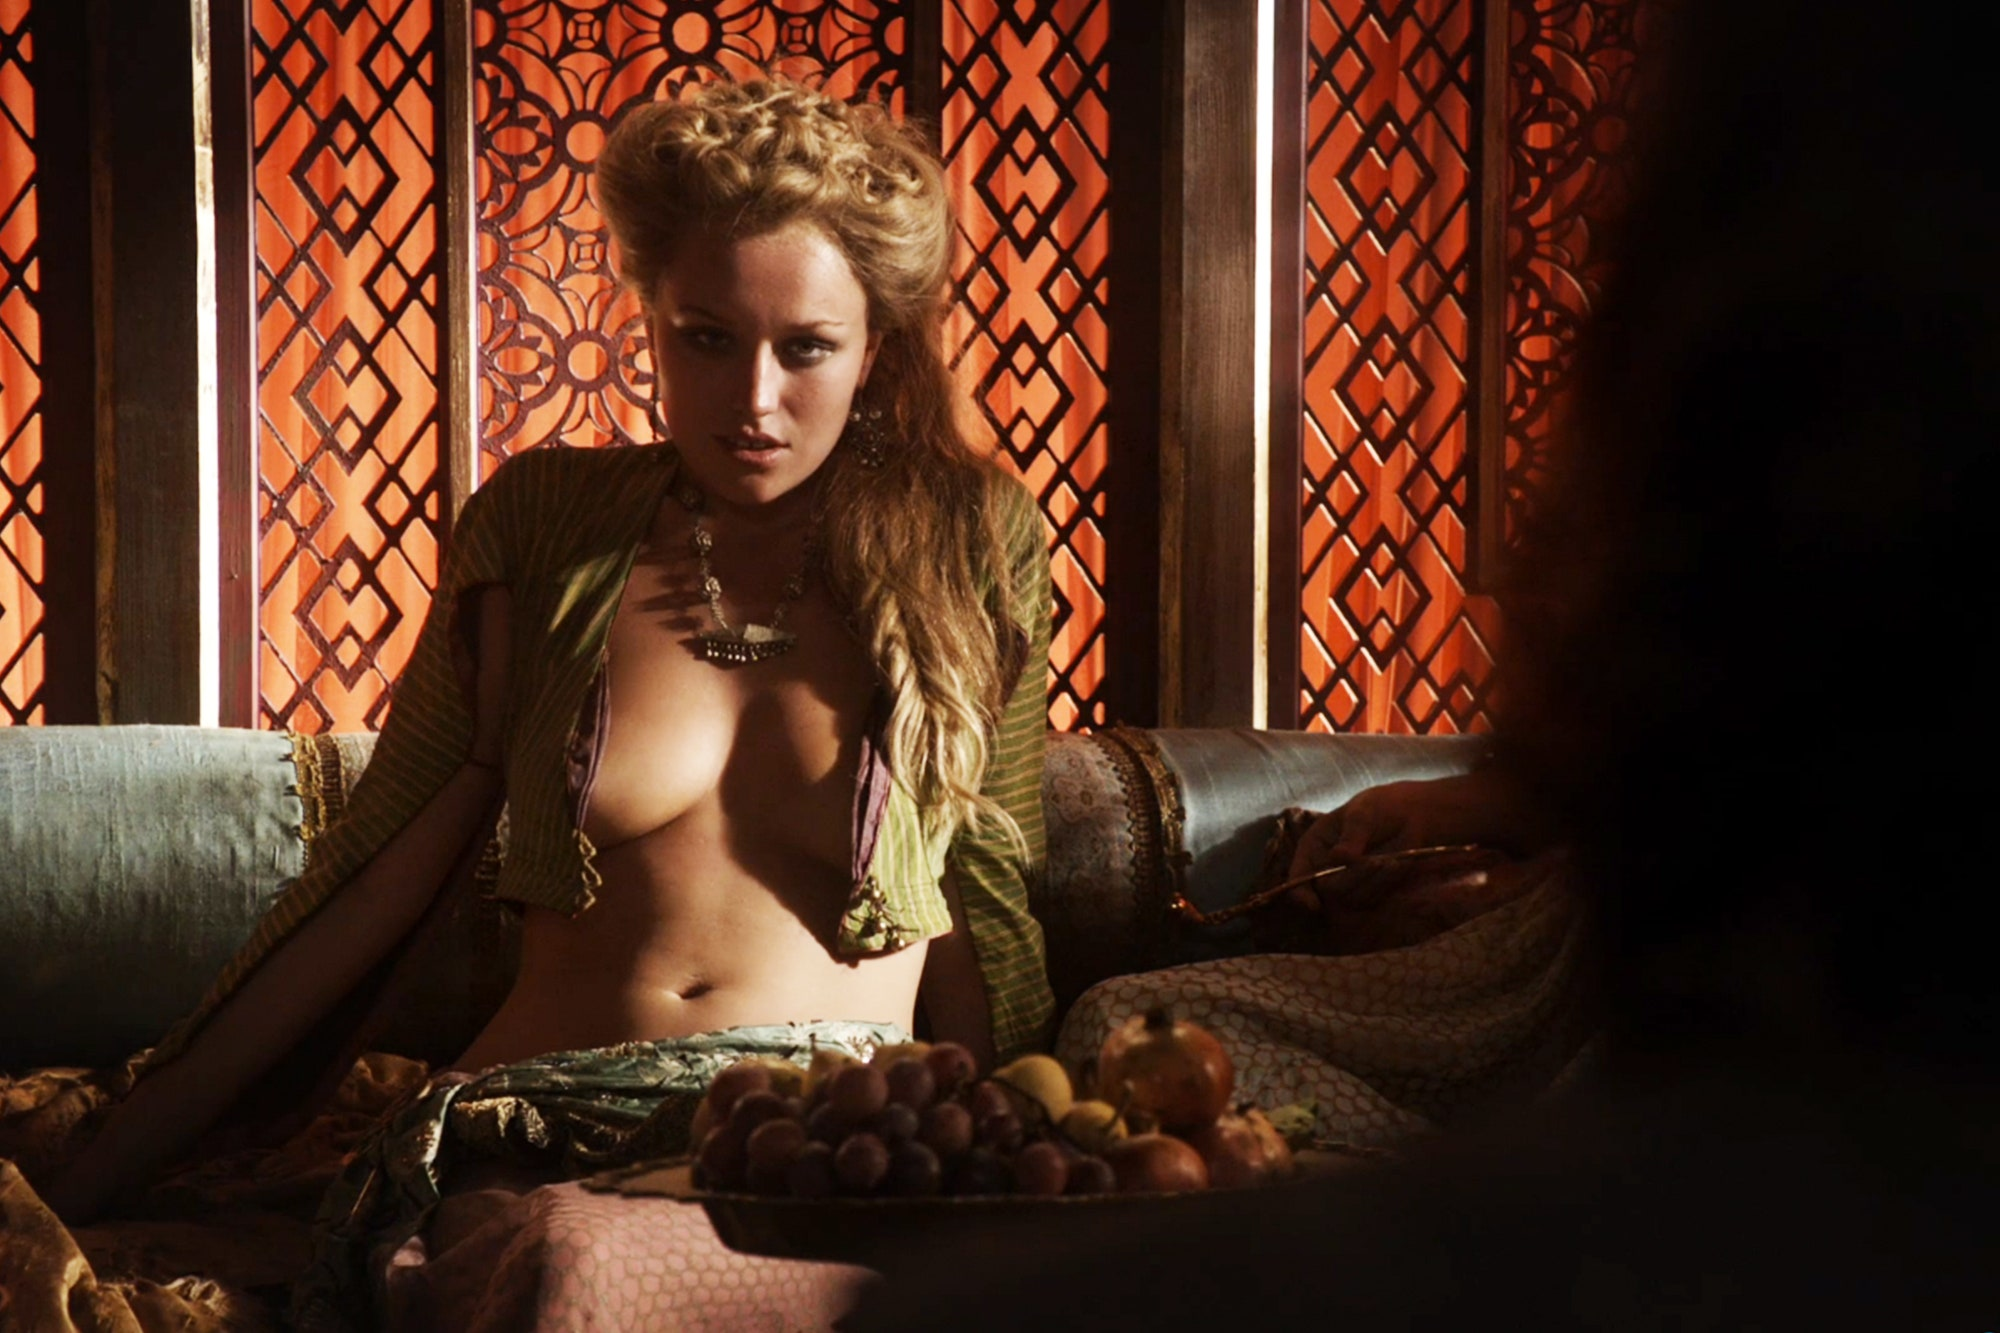 Tits In Game Of Thrones photo 20